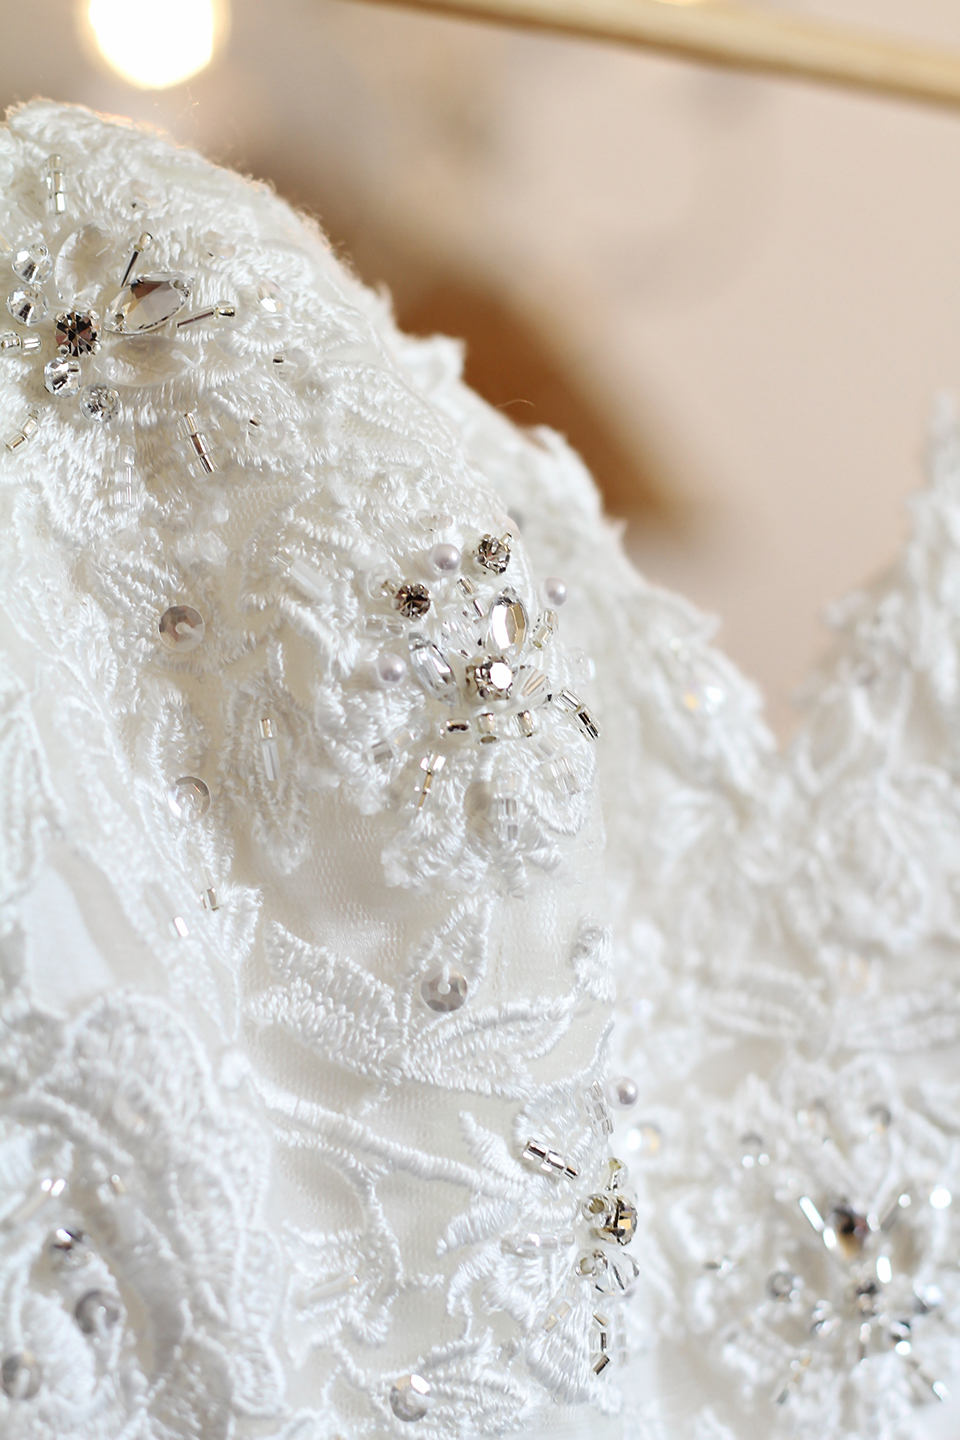 The brides dress was detailed with lace and crystals for her wedding at Bassmead Manor Barns